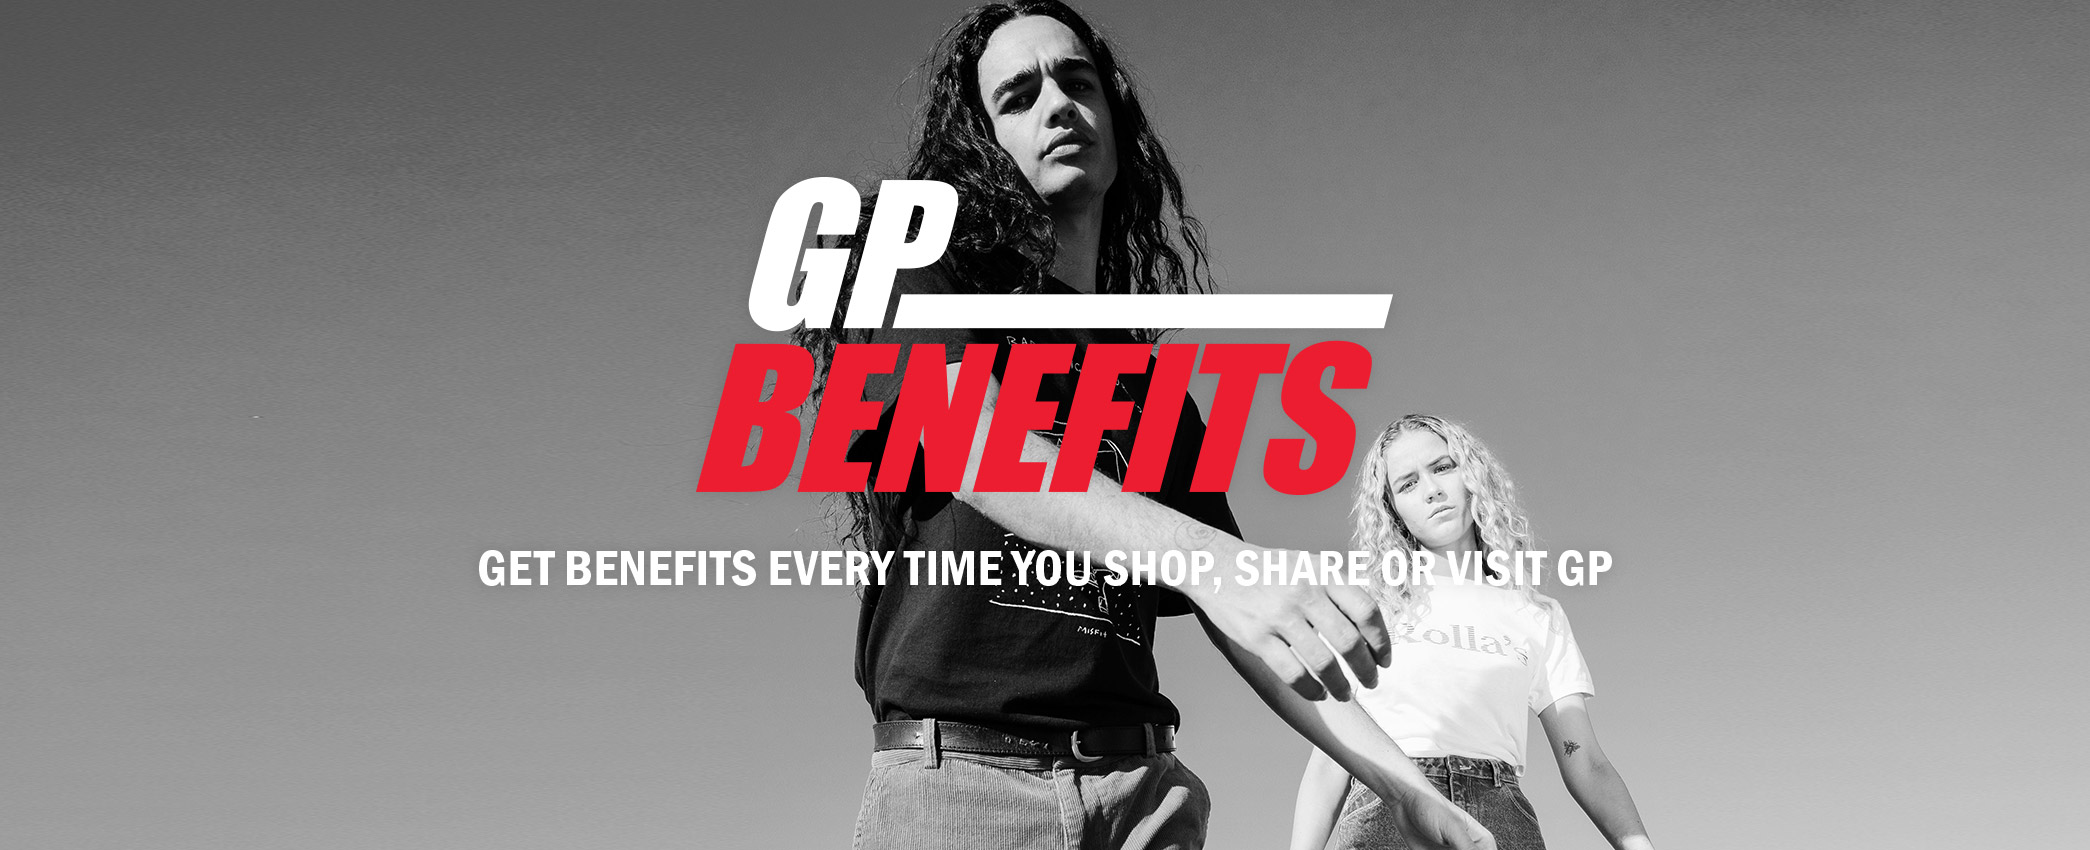 Join GP Benefits now. Receive benefits every time you shop, share or vist General Pants Co.